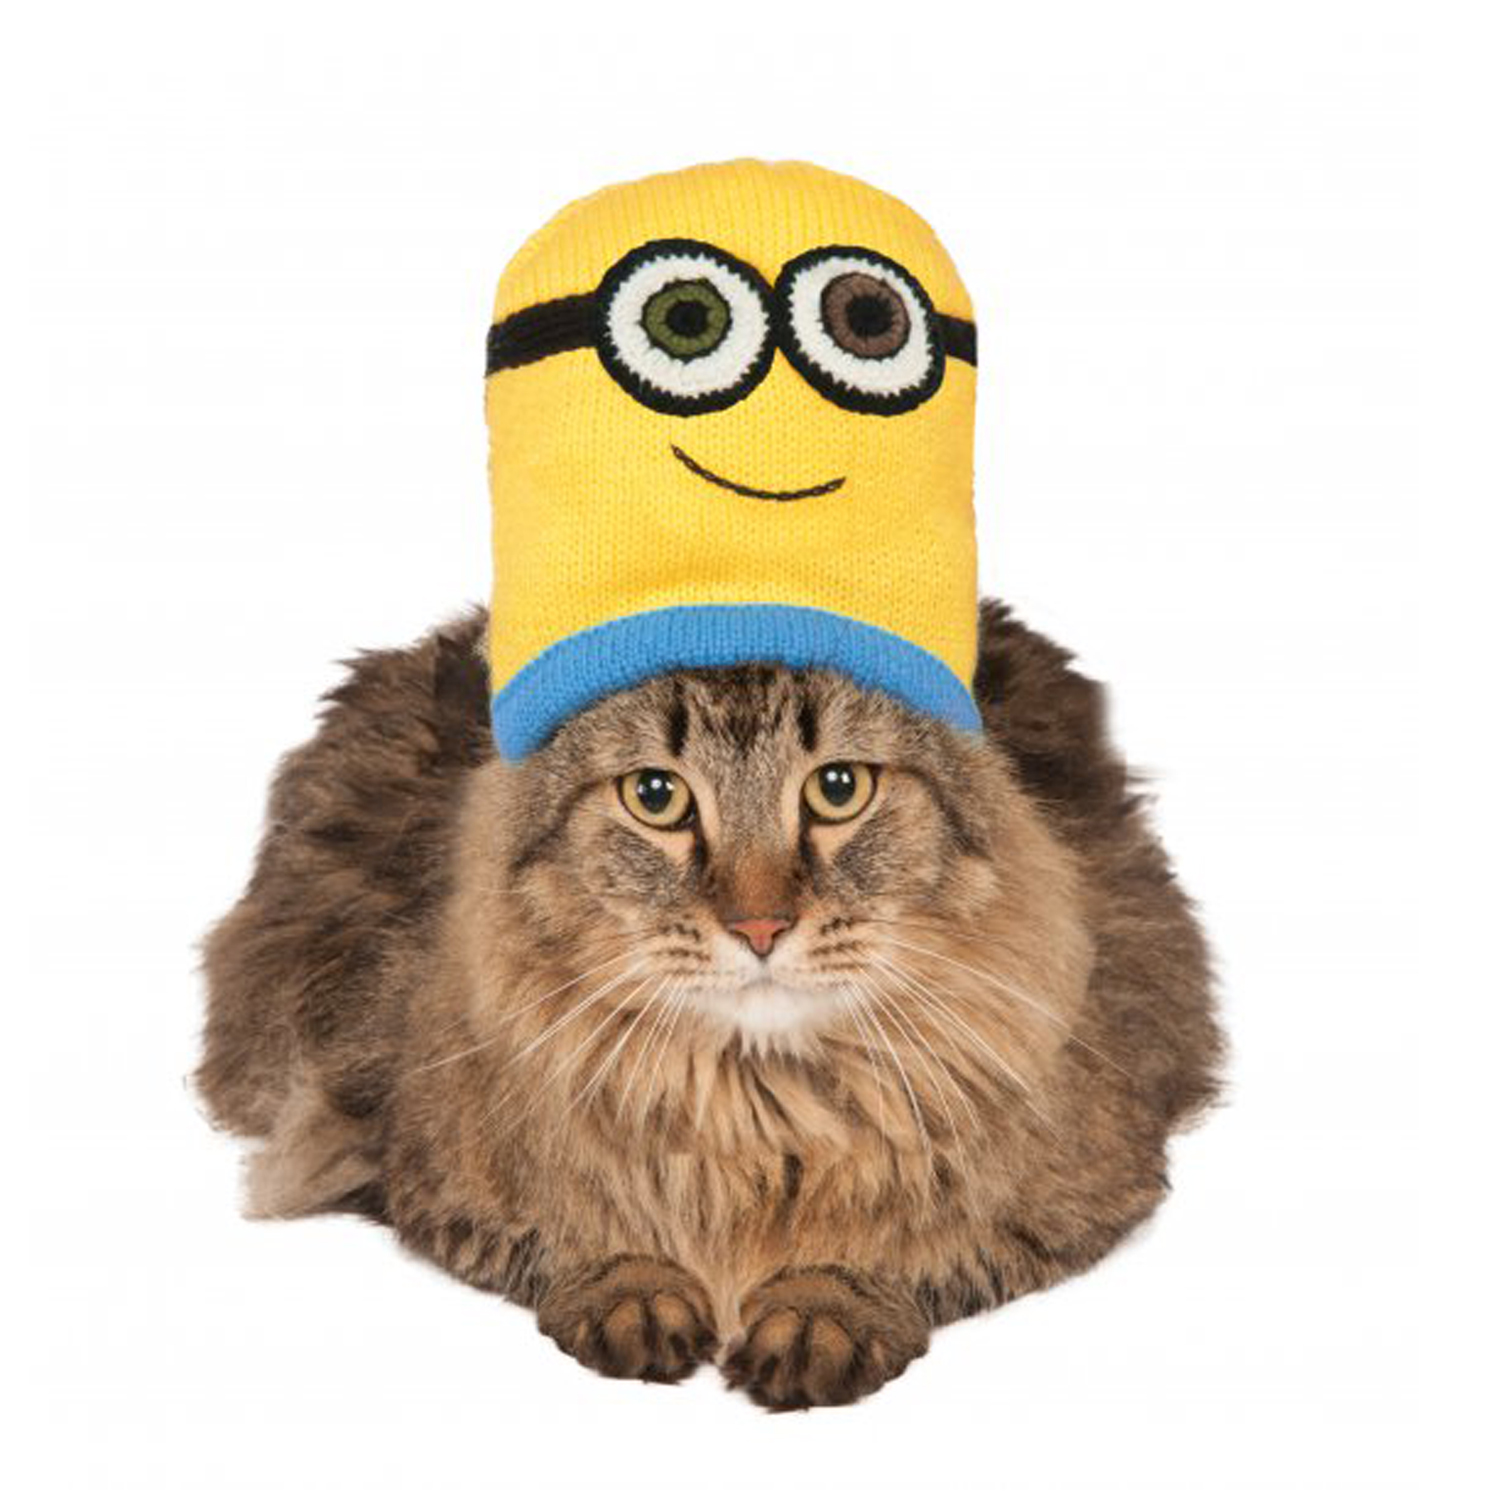 Uncover your cat's individuality with cat clothes, cat apparel and outfits from Petco. With sizes fitting most cats comfortably, find your purrfect outfit.